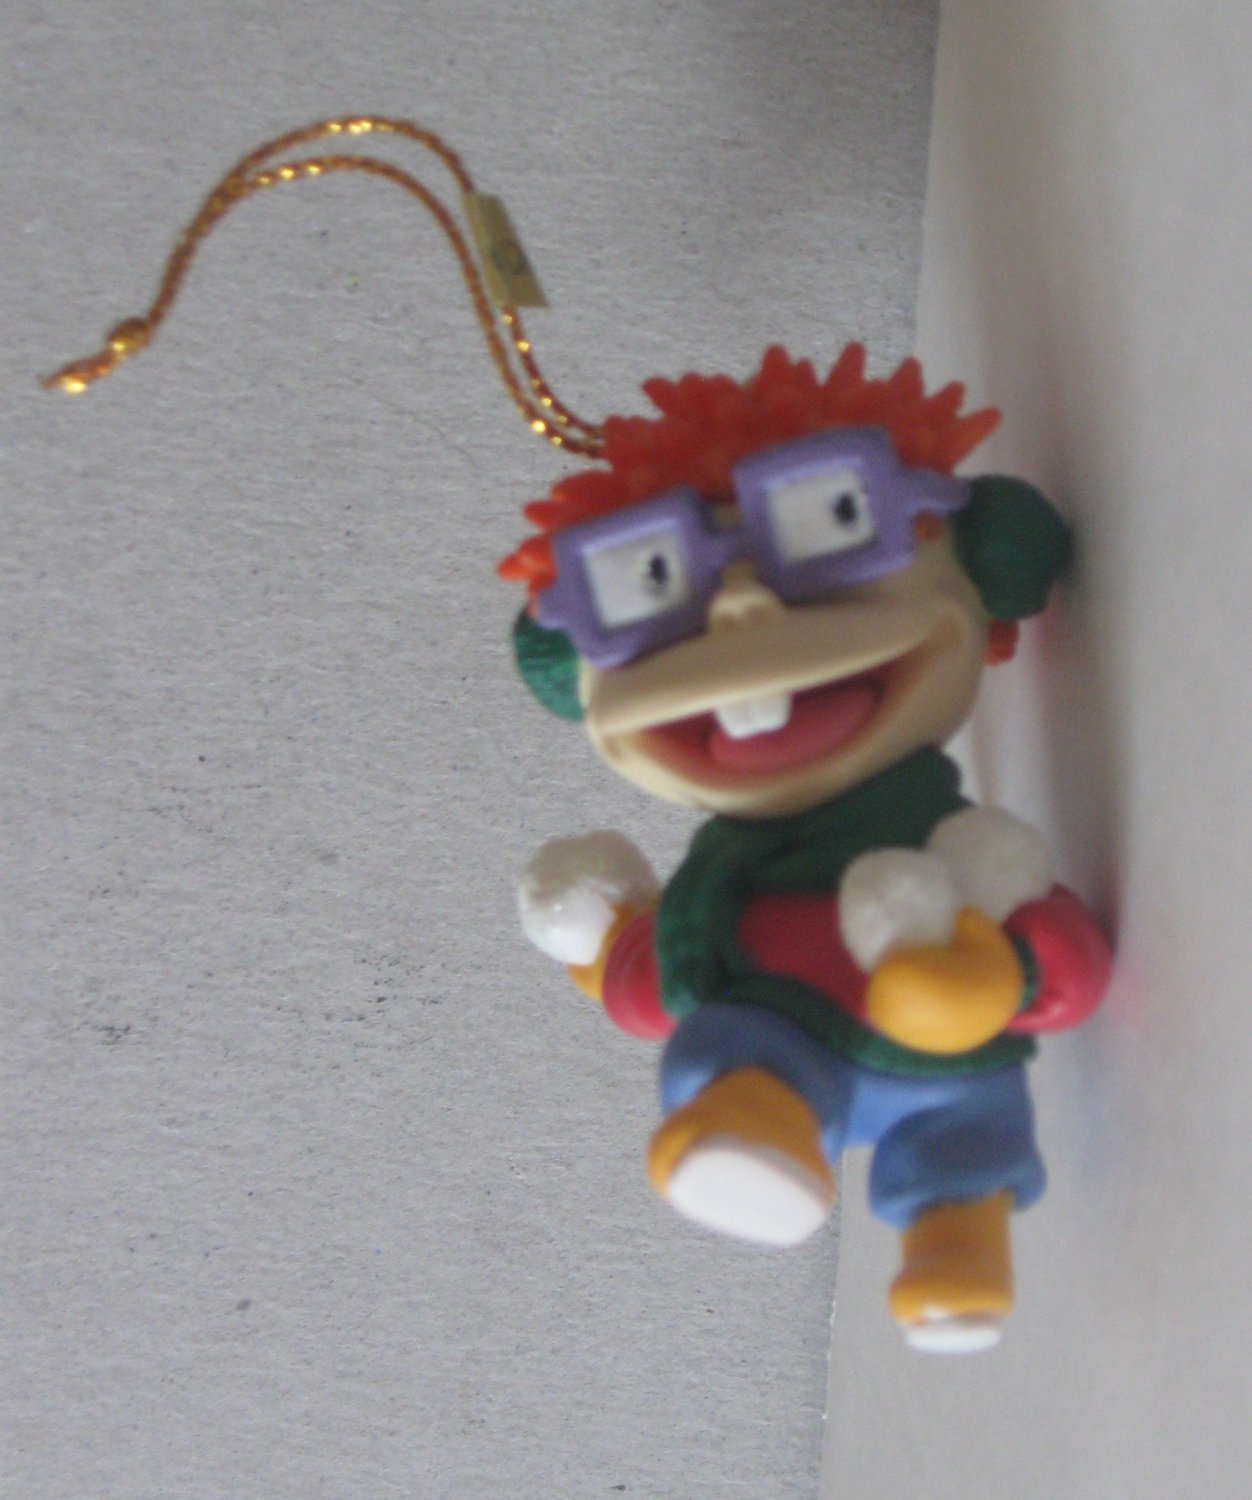 1998 American Greetings Rugrats Chuckie Ornament